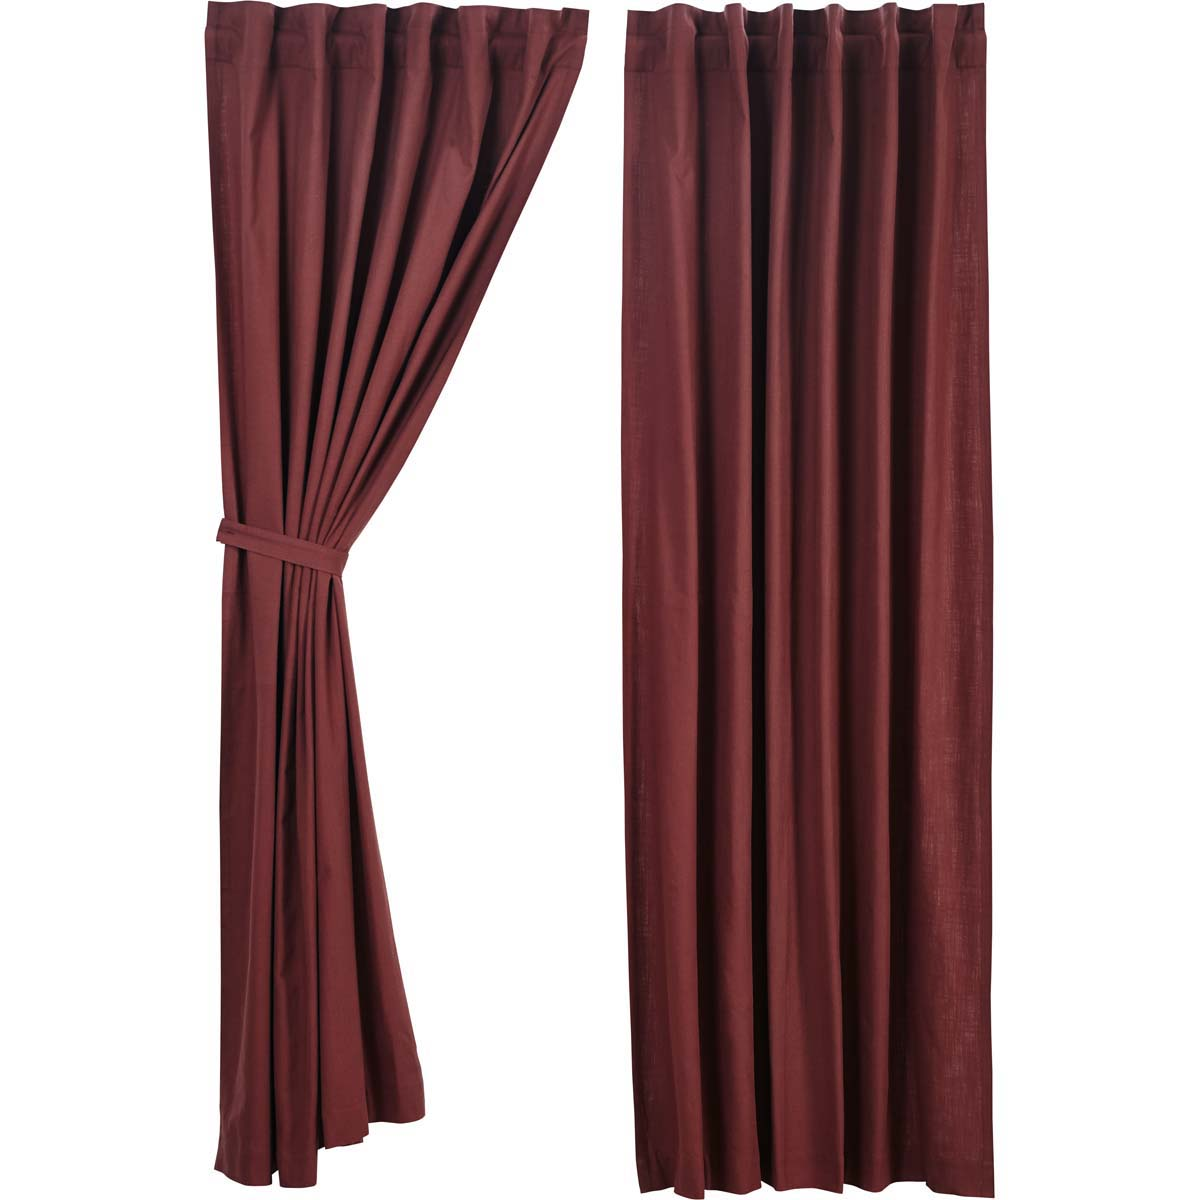 Regina Red Panel Set of 2 84x40